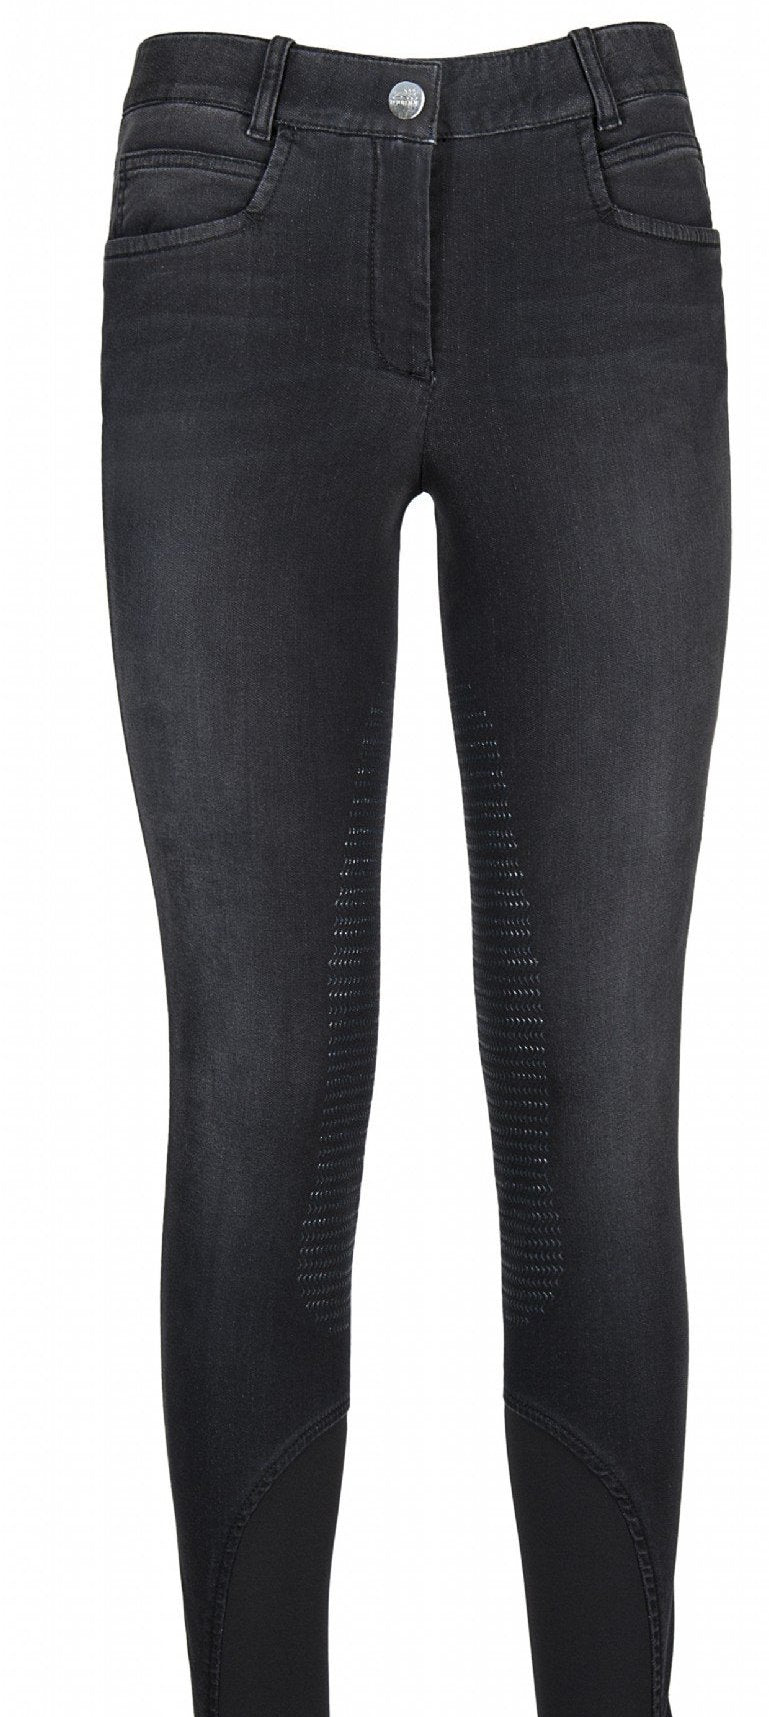 Giorgia Equiline Women's Breeches